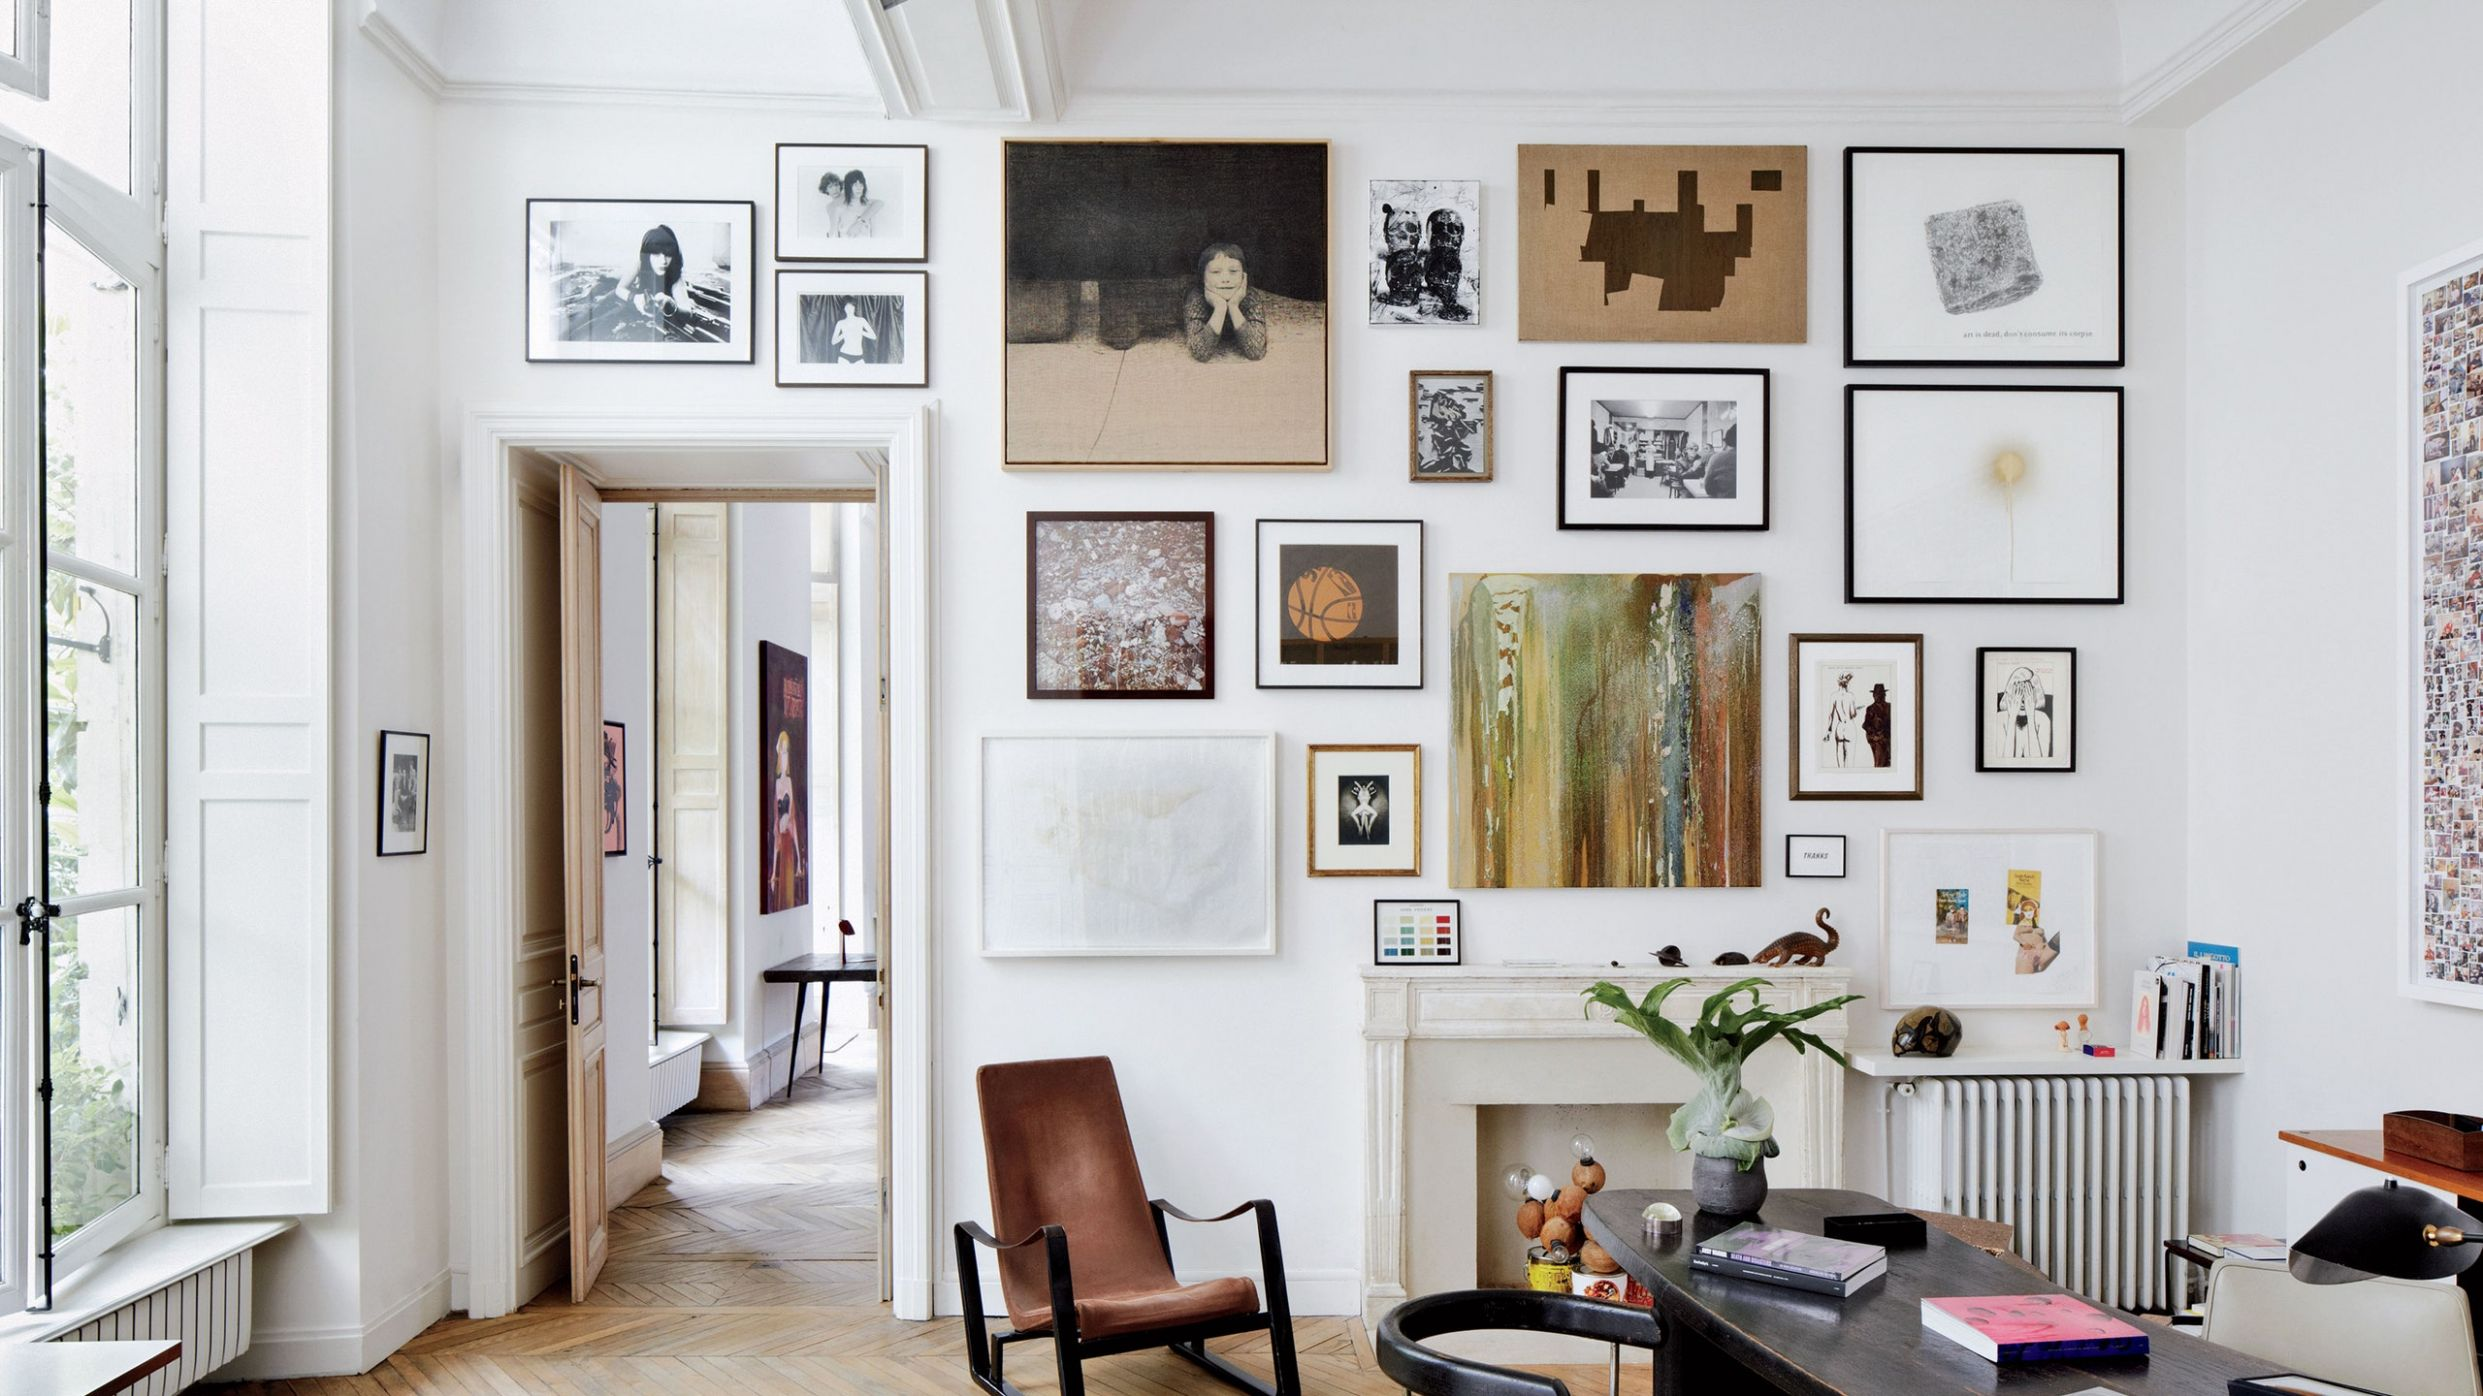 9 Wall Decor Ideas to Refresh Your Space | Architectural Digest - wall decor ideas for office